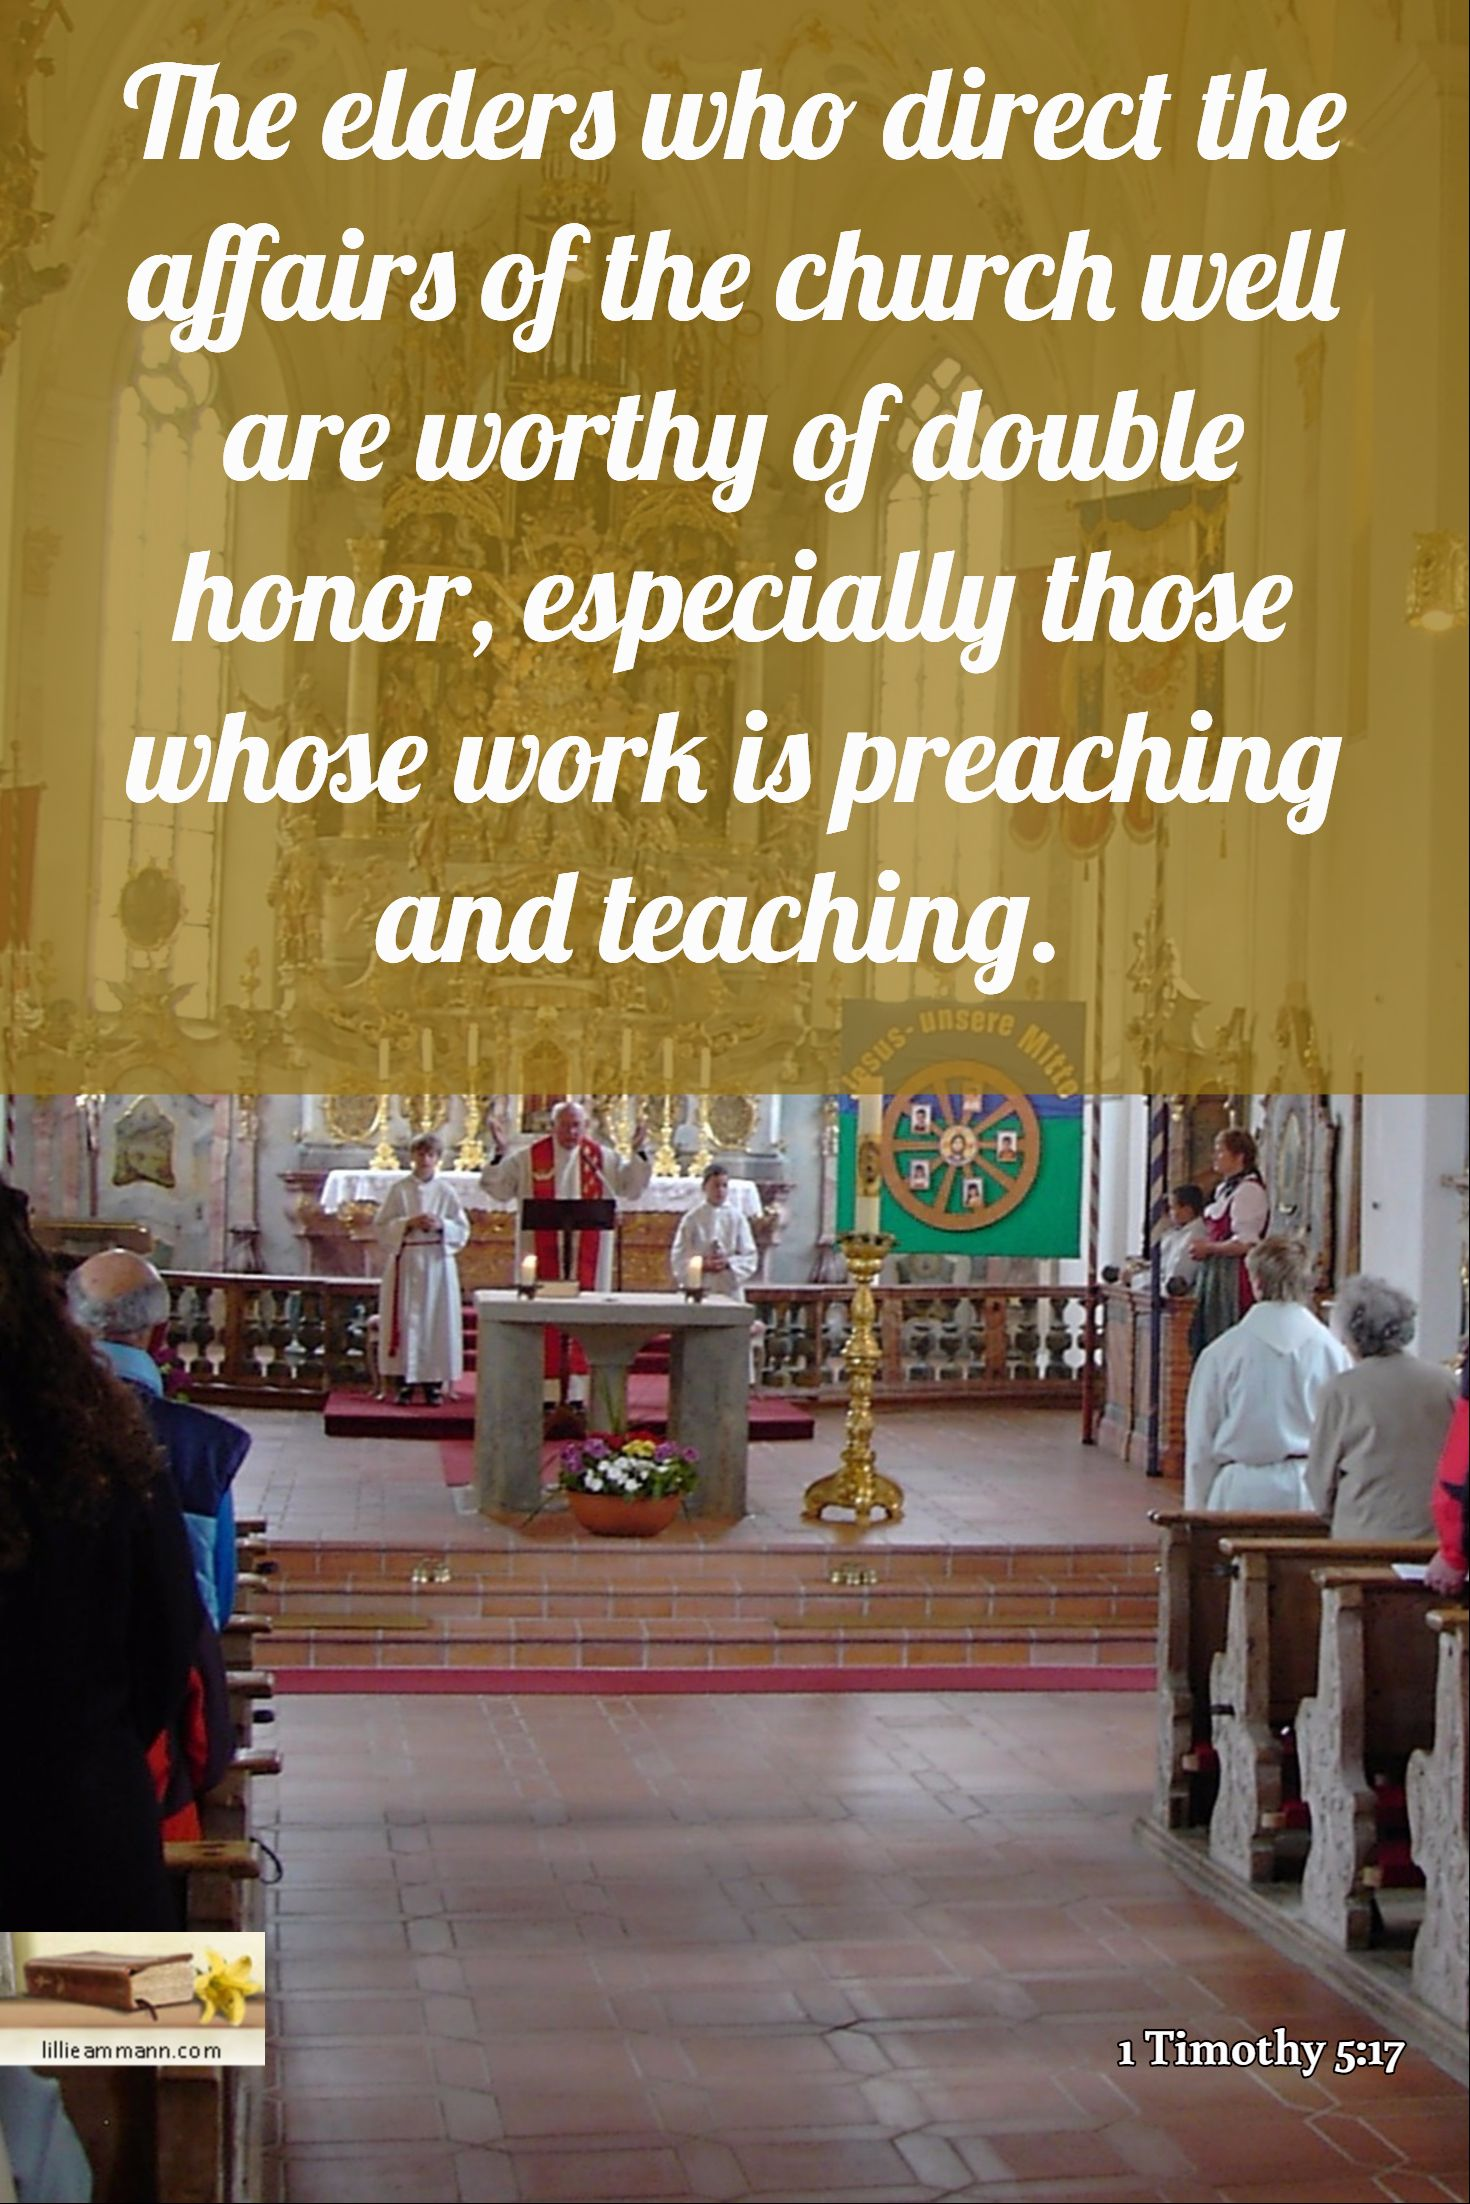 1 Timothy 5:17 / The elders who direct the affairs of the church well are worthy of double honor, es...